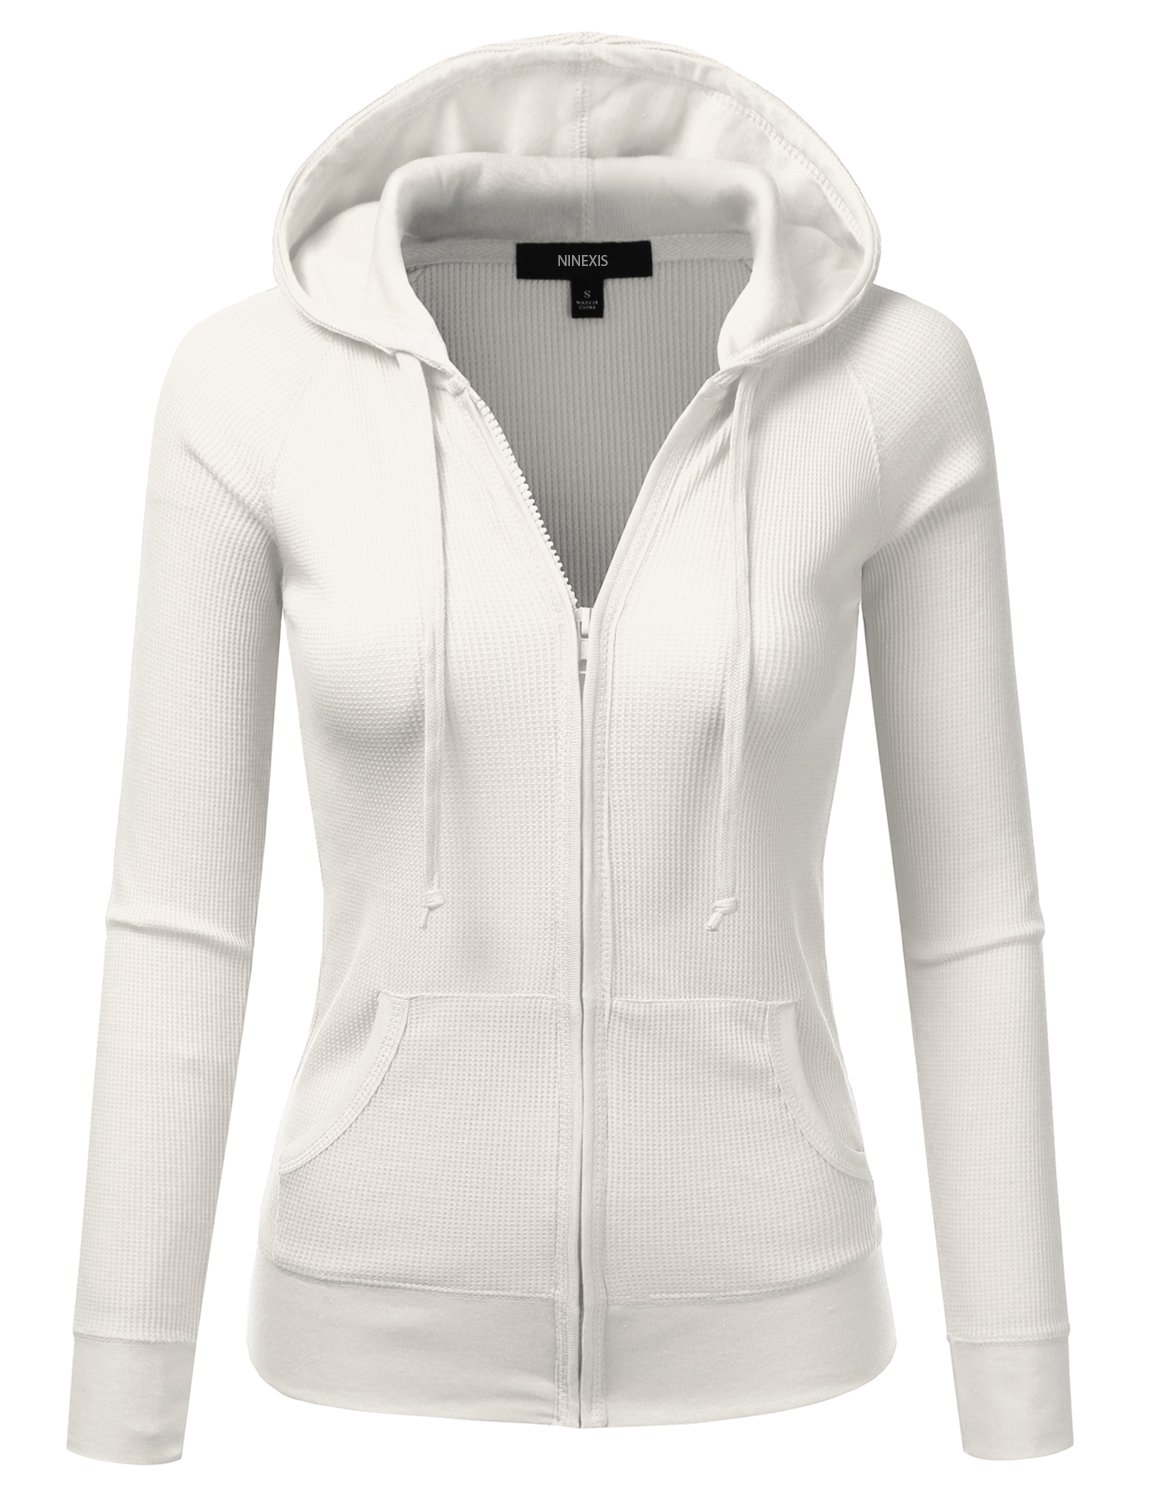 NINEXIS Women's Long Sleeve Casual Lightweight Hooded Thermal Zip-Up Jacket White S